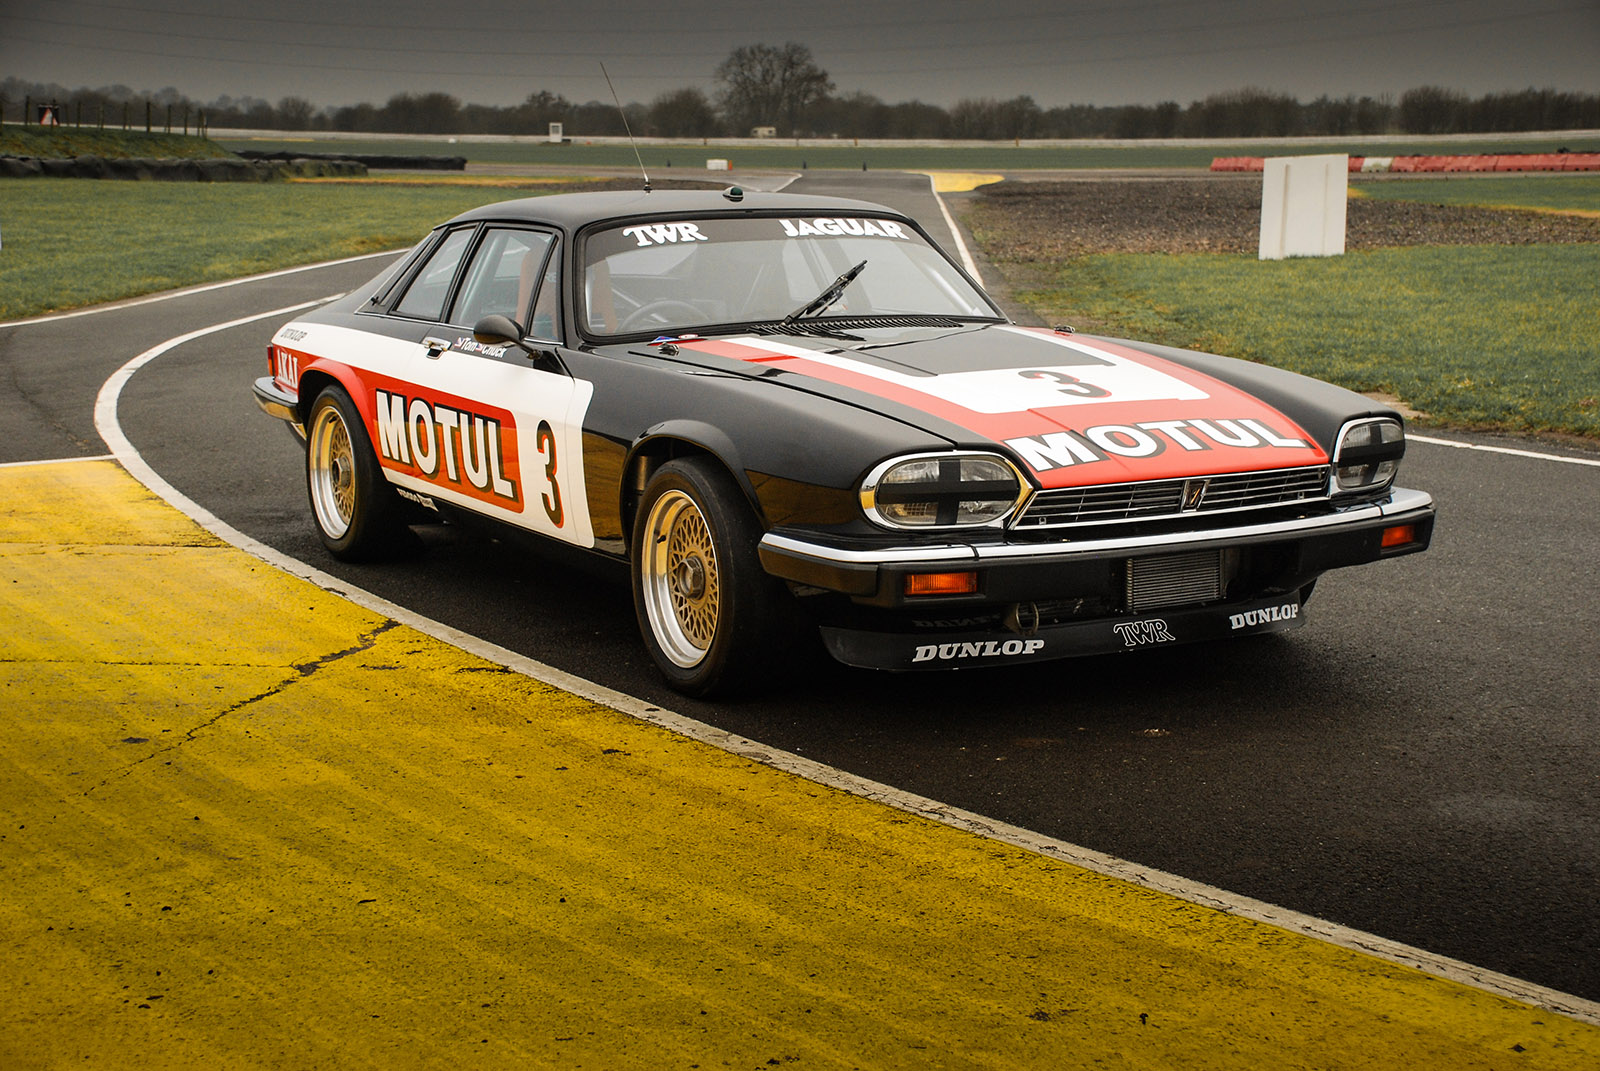 jaguar_twr_xjs_walkinshaw_wilkinson_sayer_selection_right_front_profile.jpg